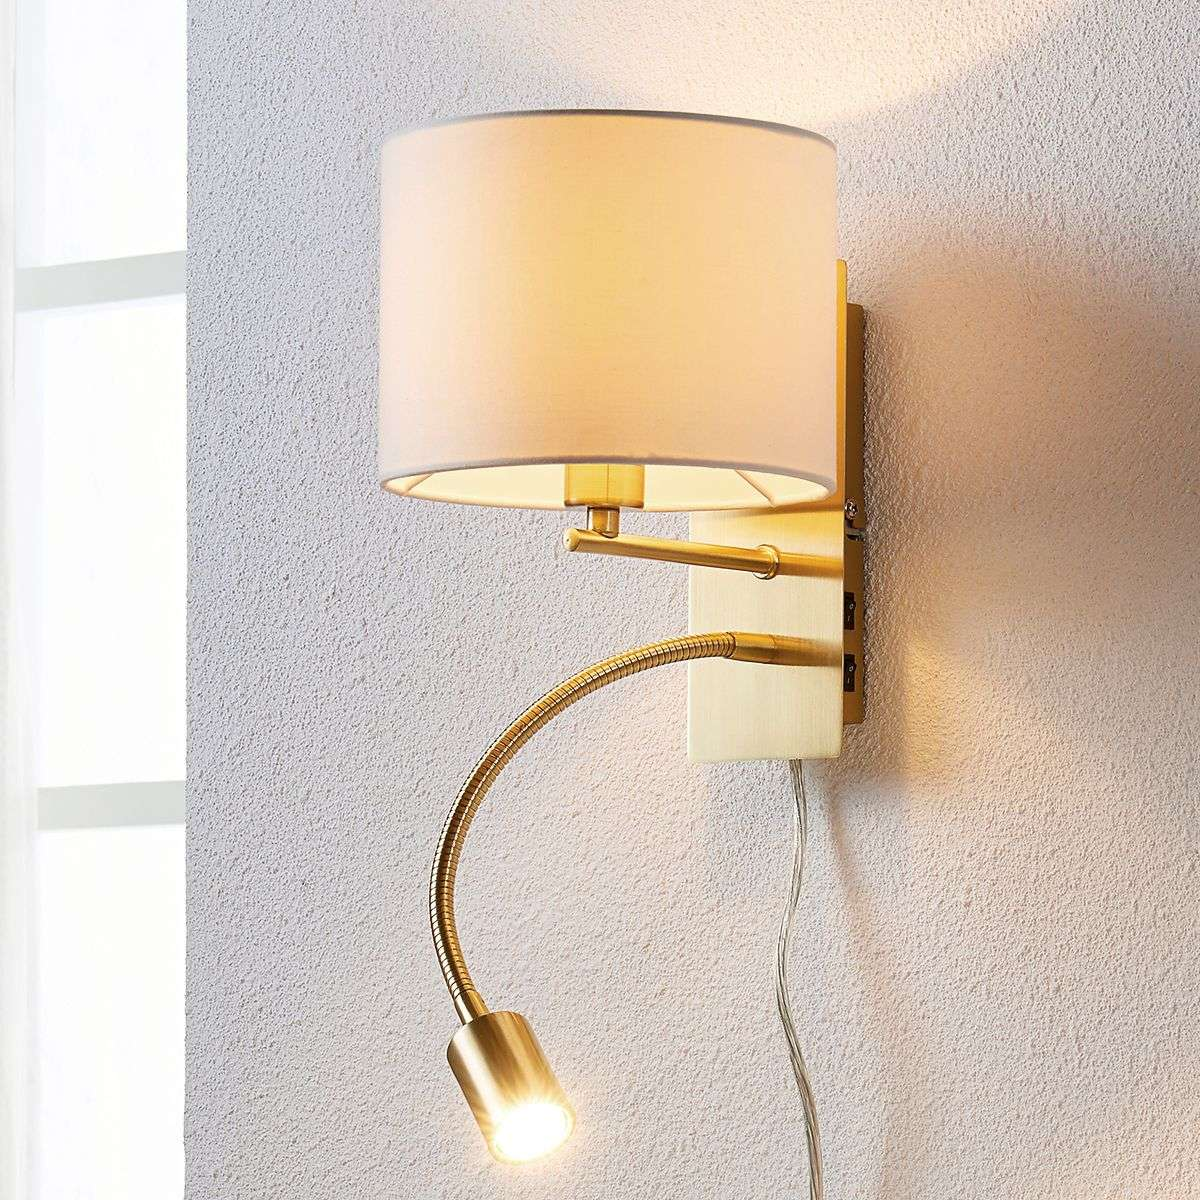 Brass-coloured wall lamp Florens LED reading light Lights.co.uk